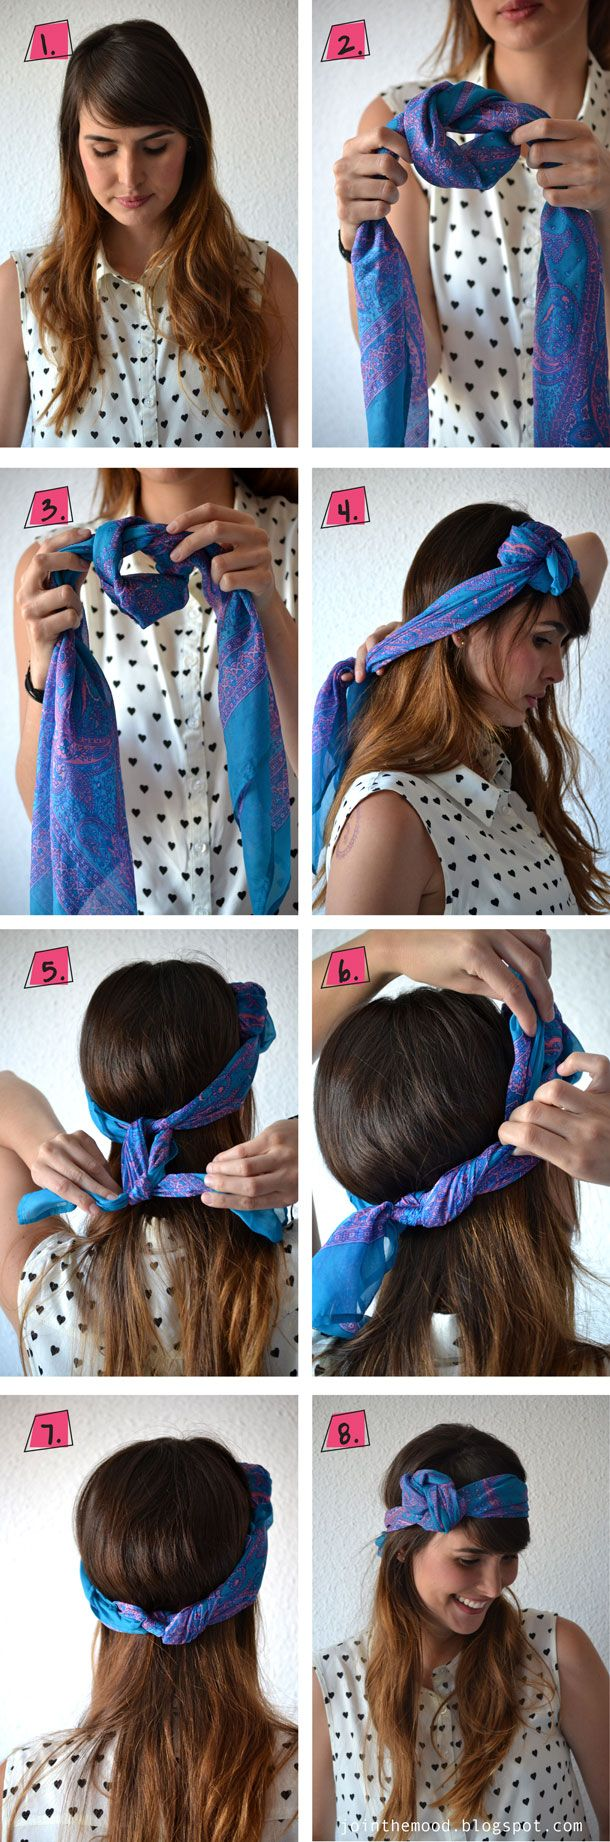 12 Ways to Rock a Head Scarf this Summer  momooze.com